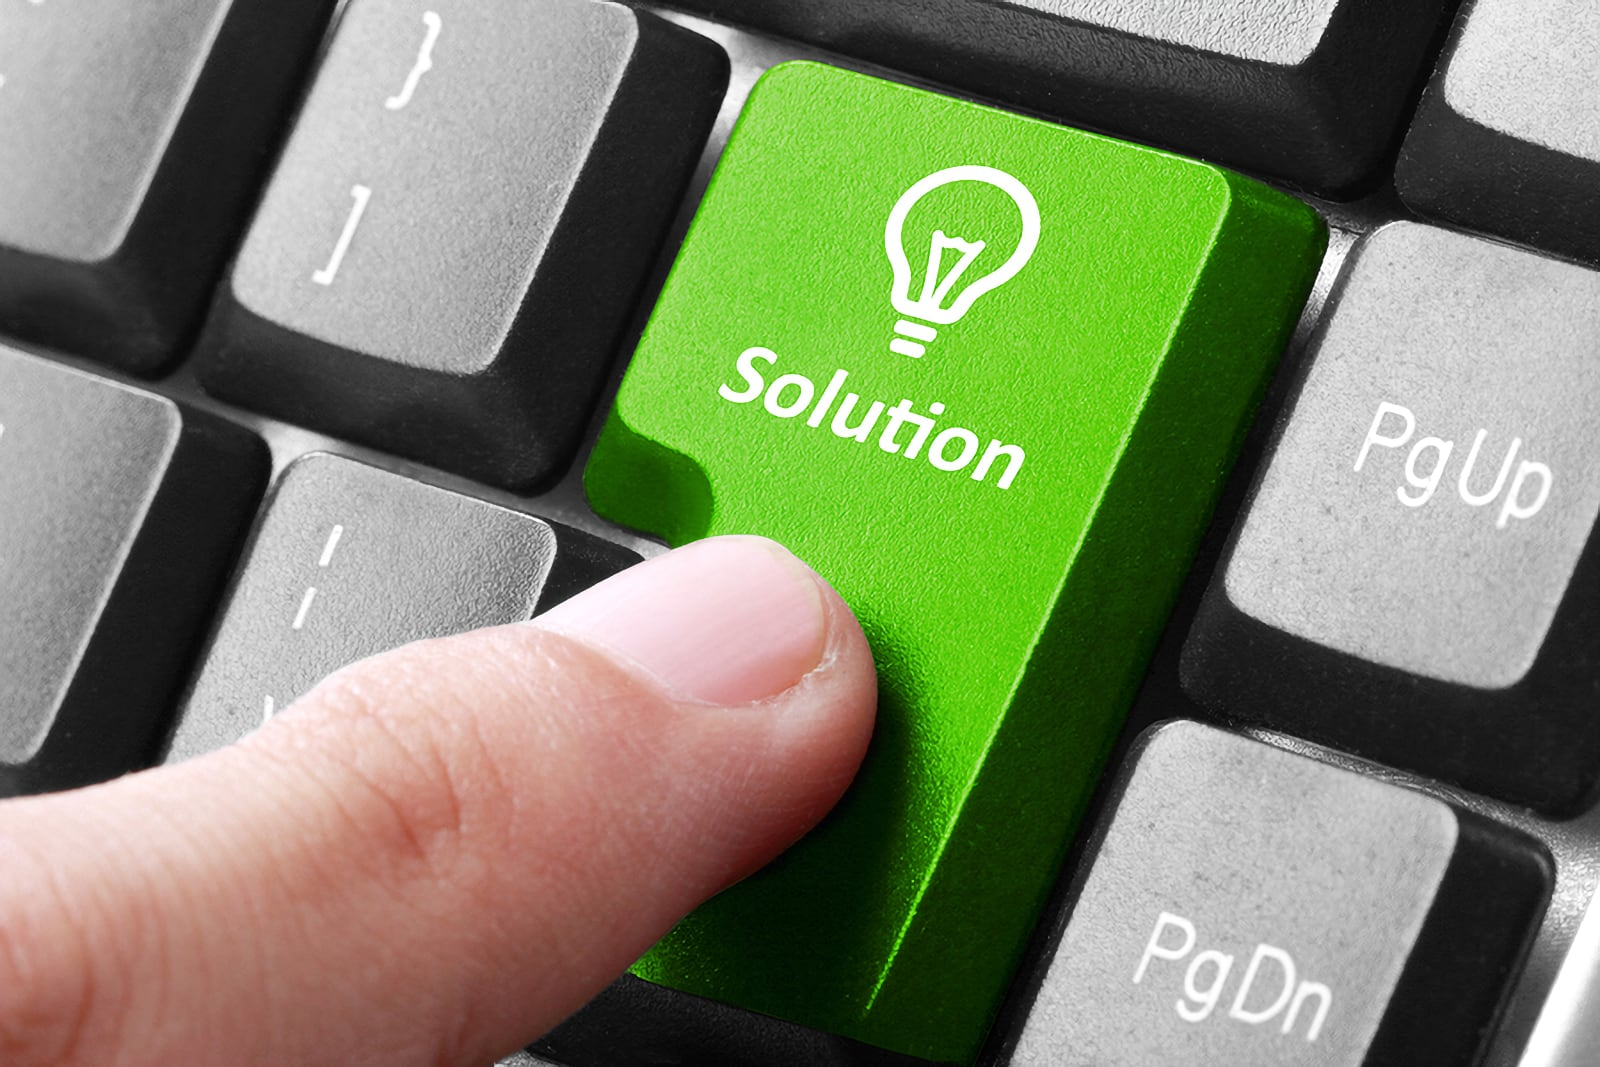 Dark-coloured computer keyboard in which the Enter Return key has been renamed to Solution, includes a lightbulb icon and is coloured green